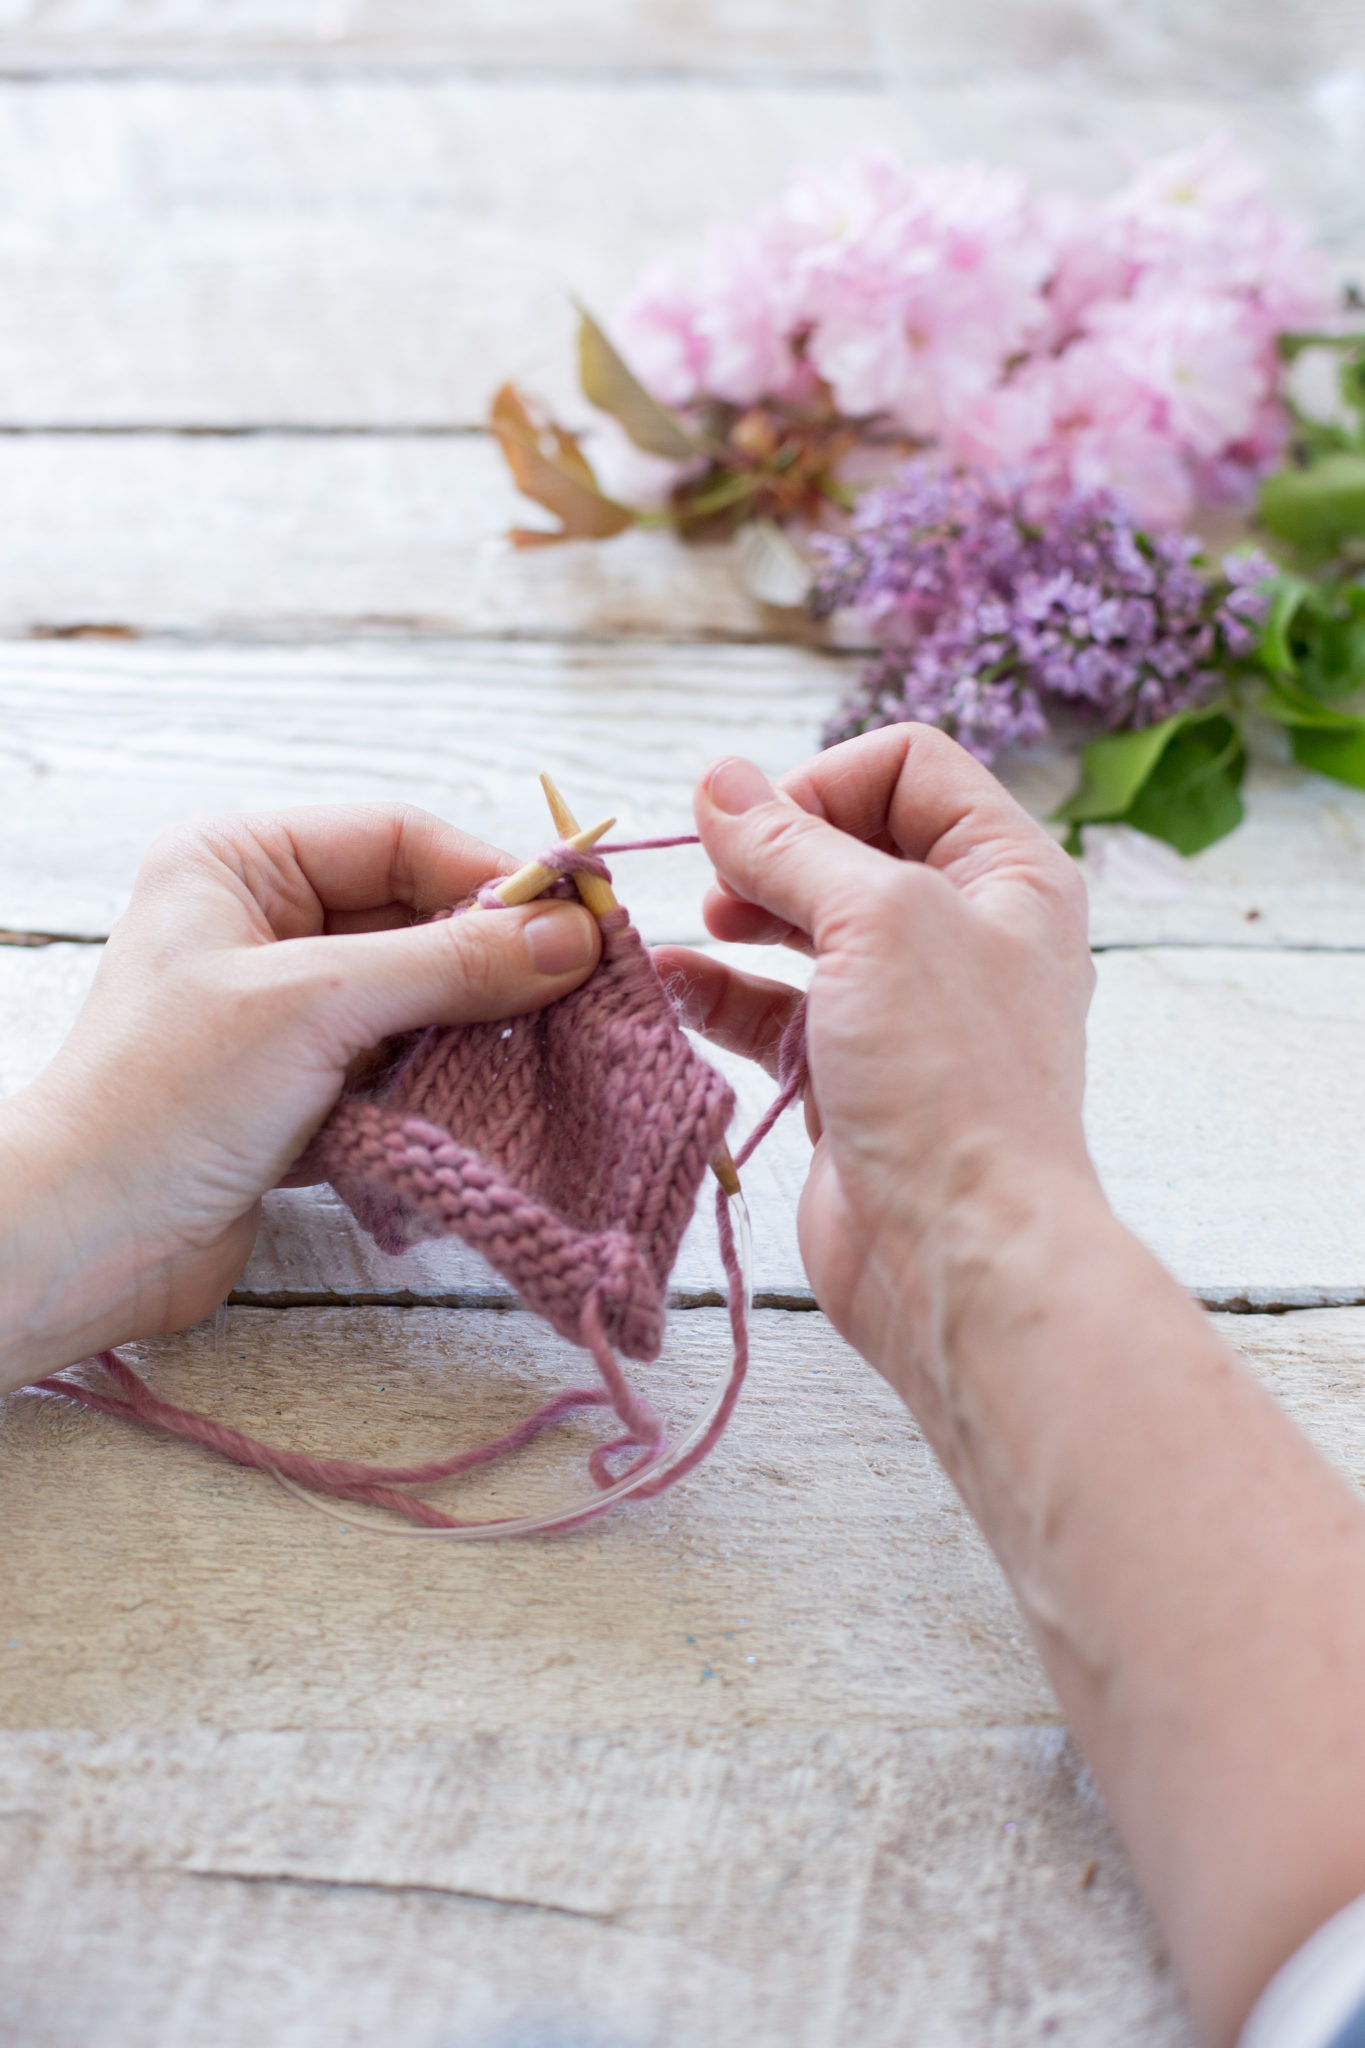 Removing Extra Stitches Knitting : Fixing Common Knitting Mistakes - Flax & Twine